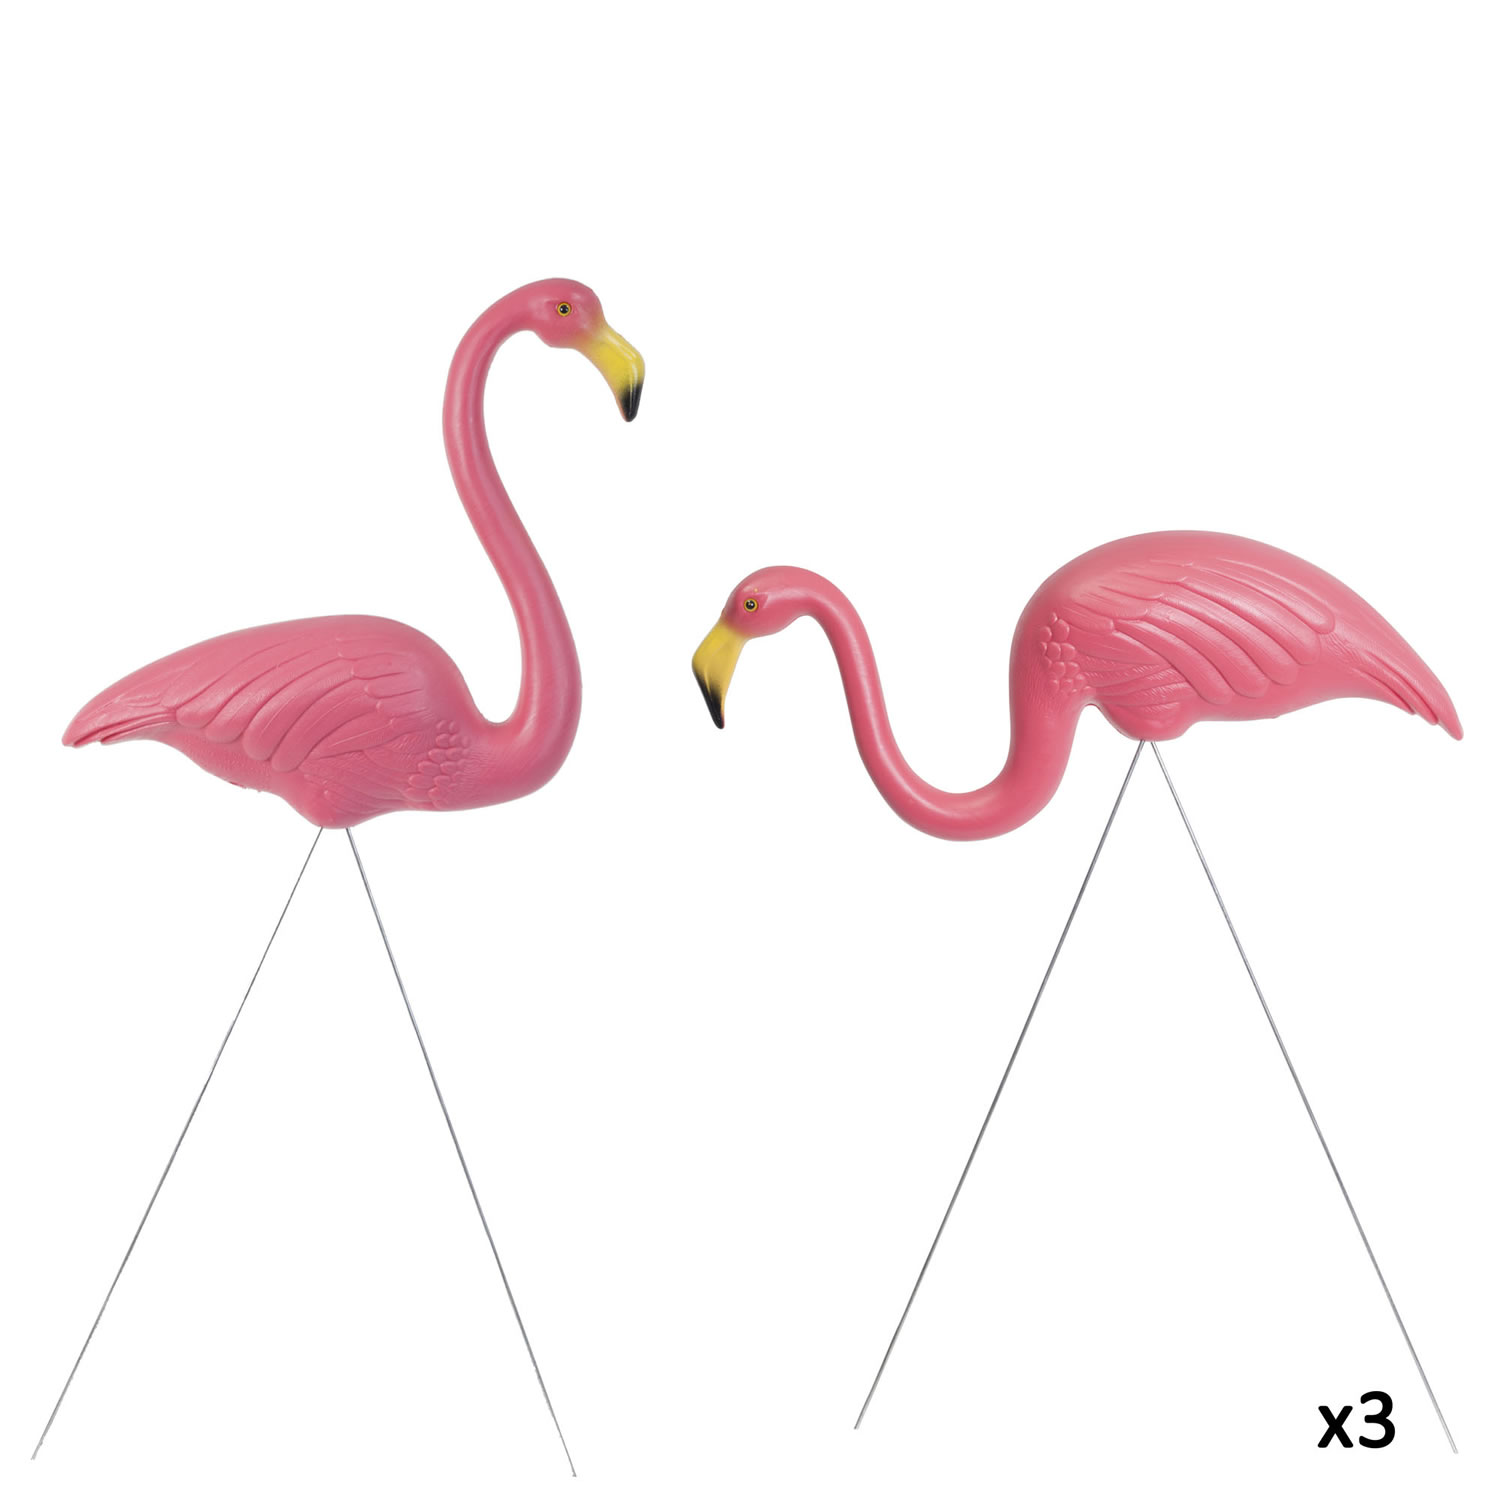 Flamingo garden ornament - Image Of 3 Pairs Of Authentic Pink Plastic Lawn Flamingo Garden Ornaments By Don Featherstone